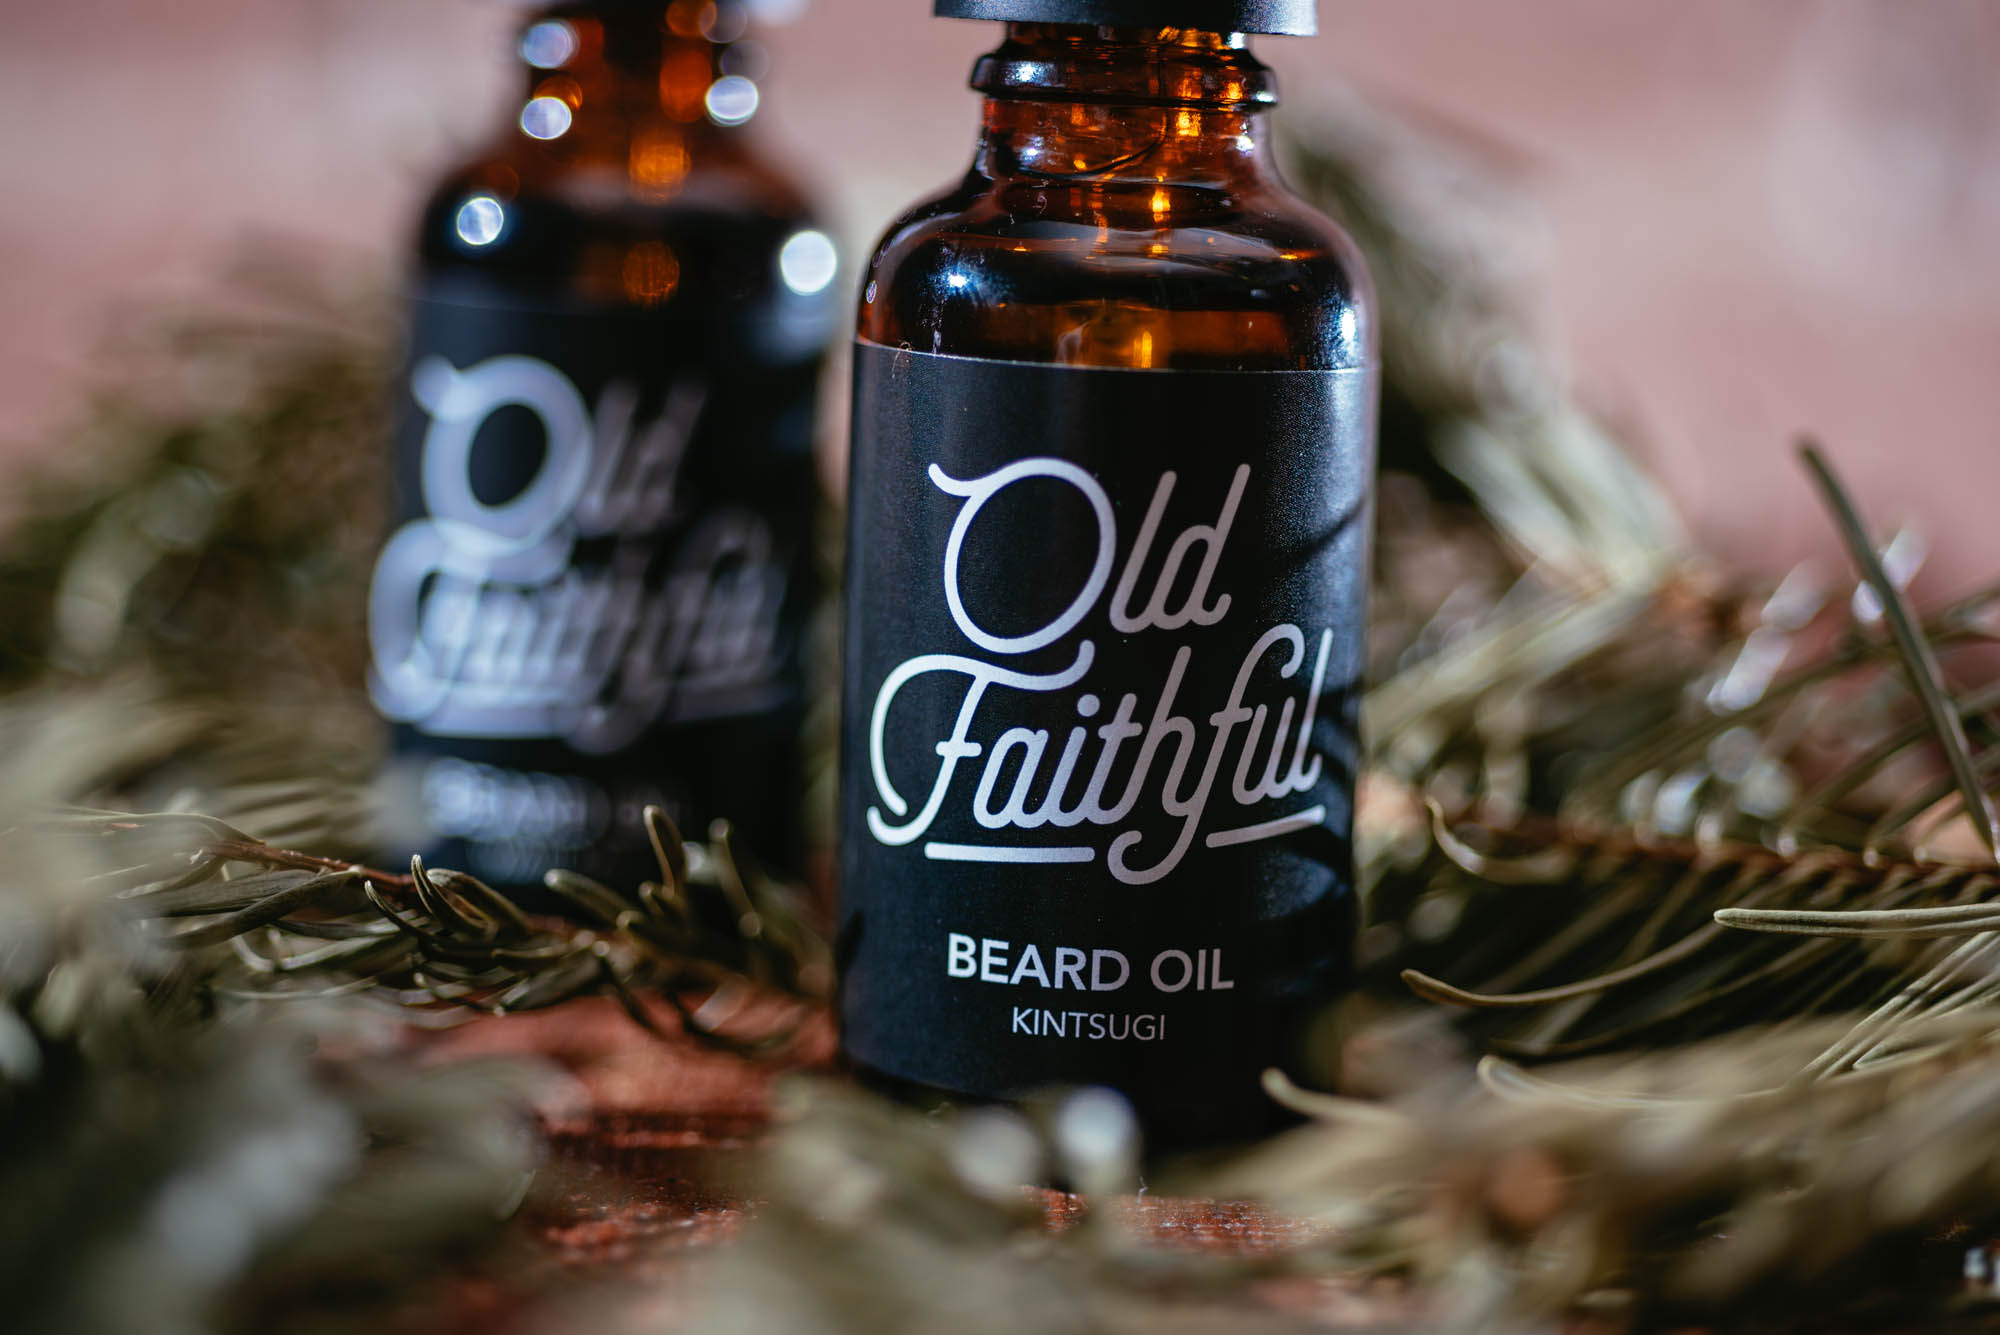 A photo of two bottles of beard oil